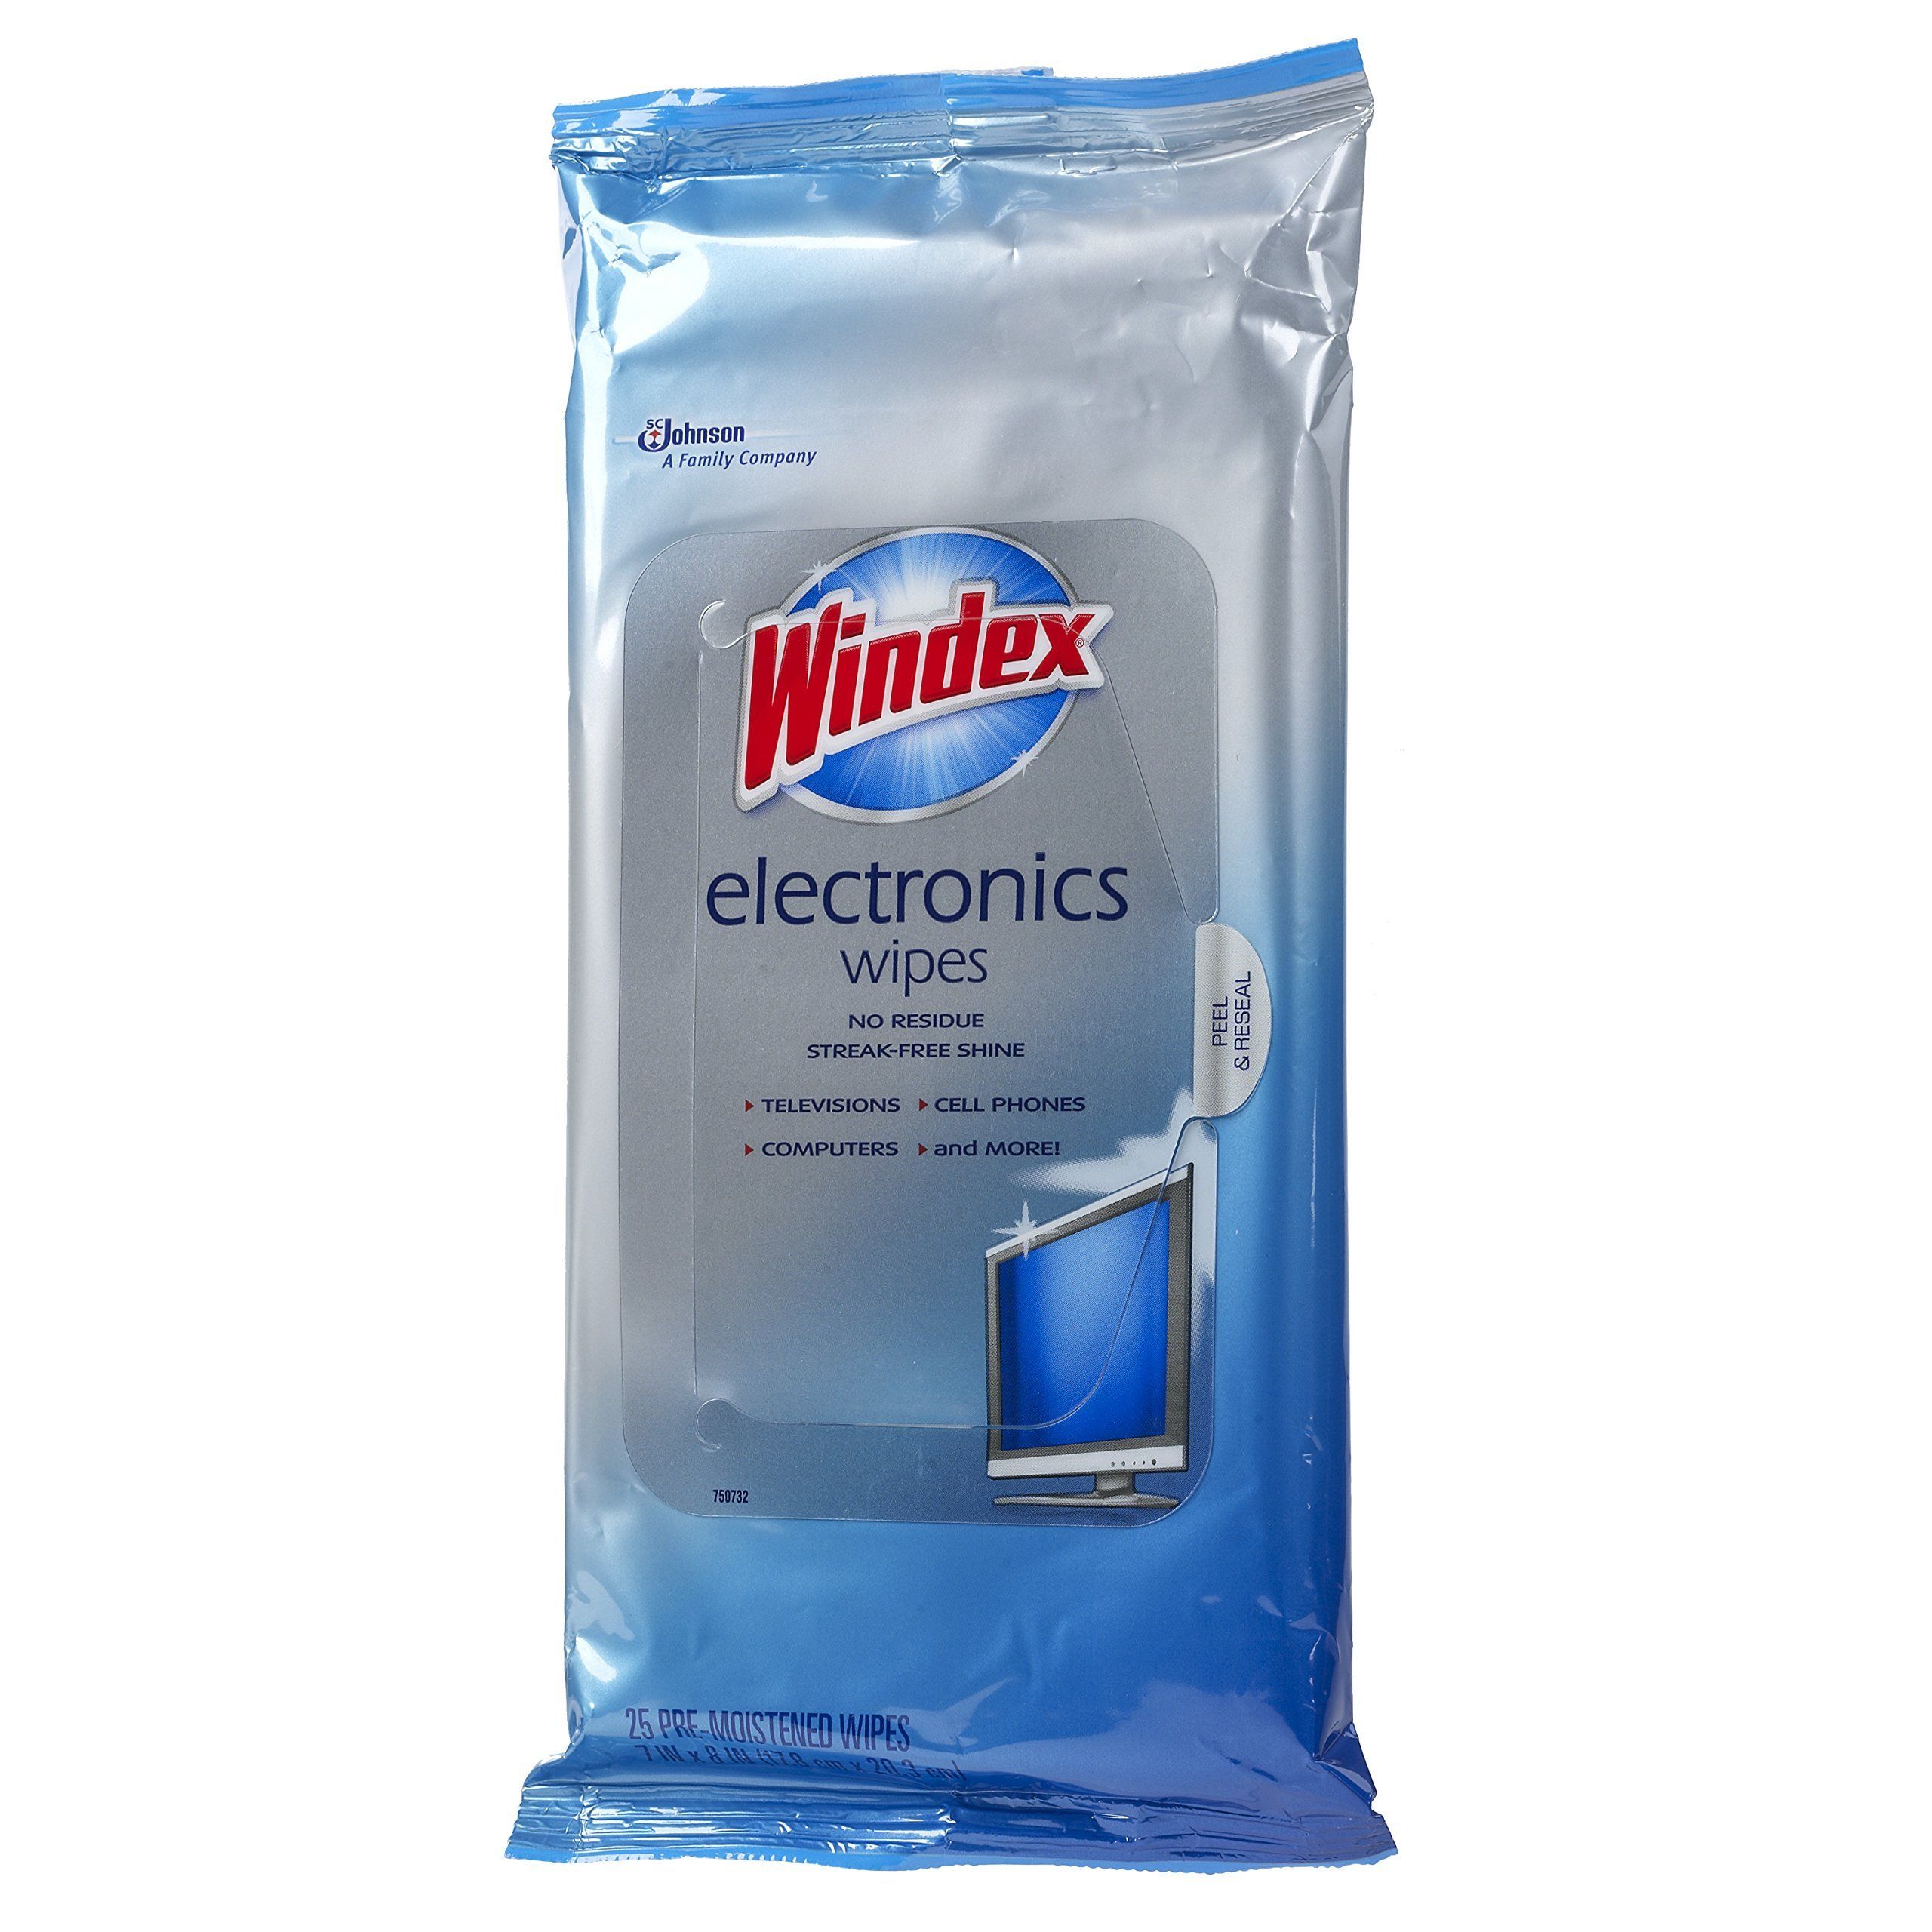 IUYEUH Electronics Wipes, 25 ct 6 Pack by Windex (Image #3)